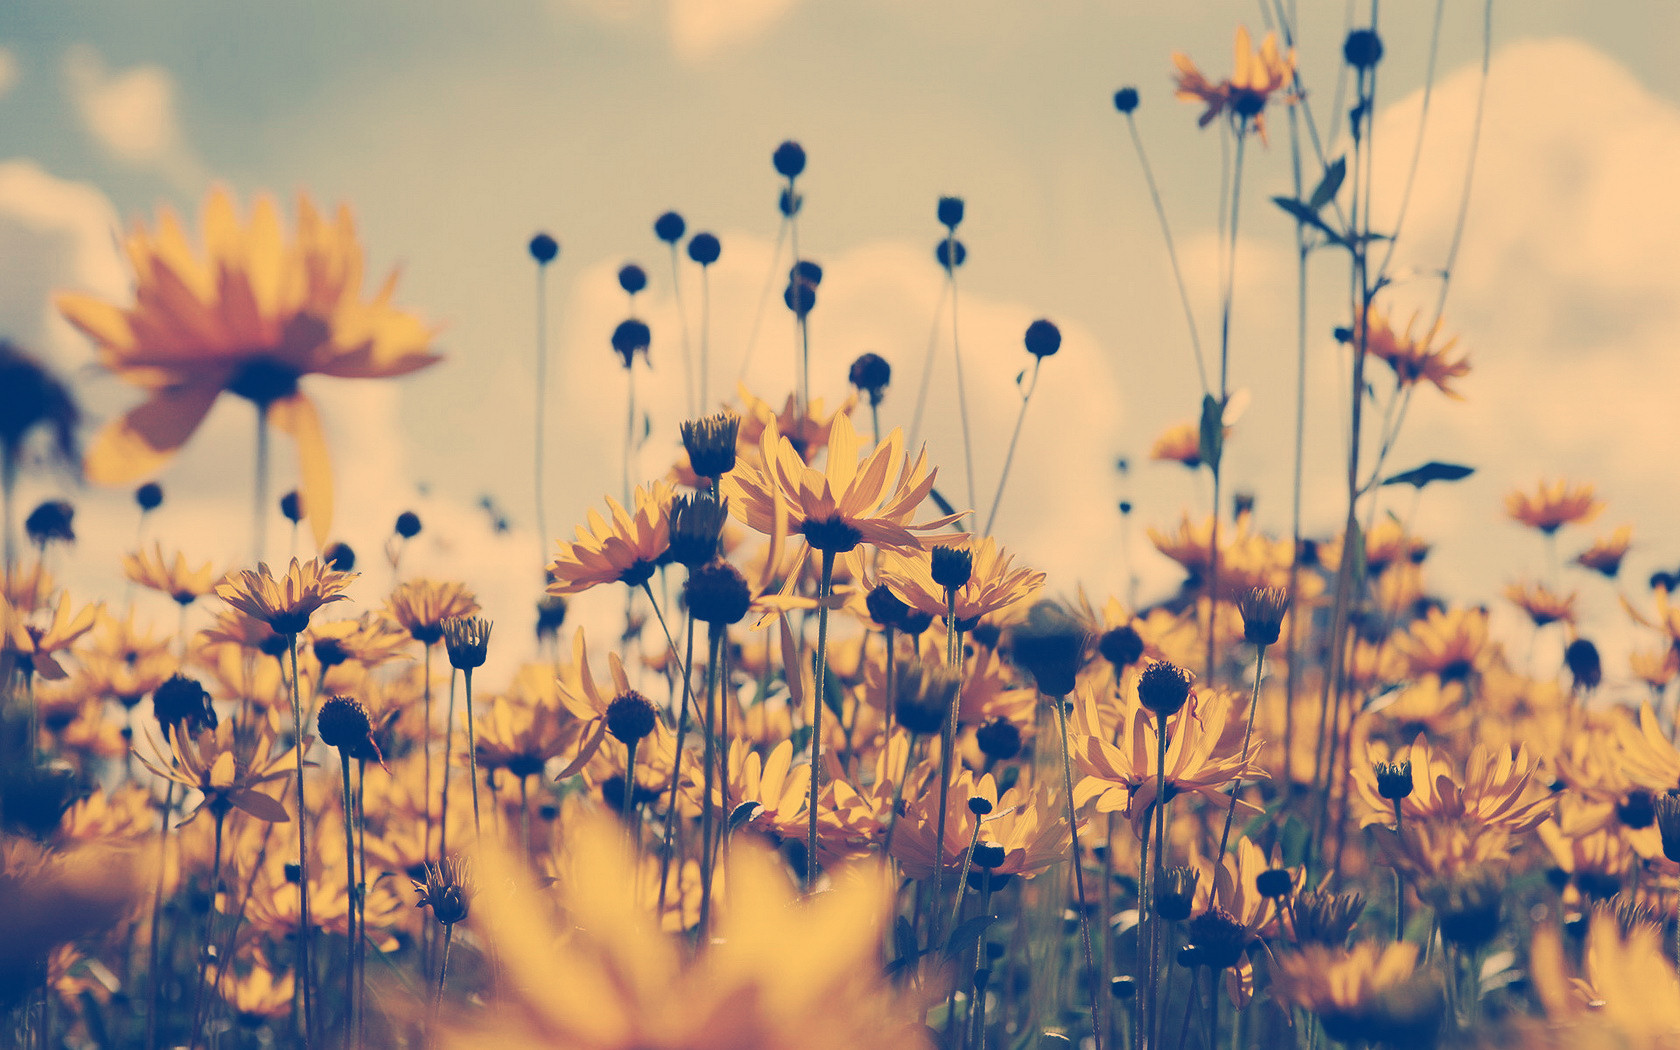 40 Images About Flower On We Heart It See More Flowers Vintage And Background